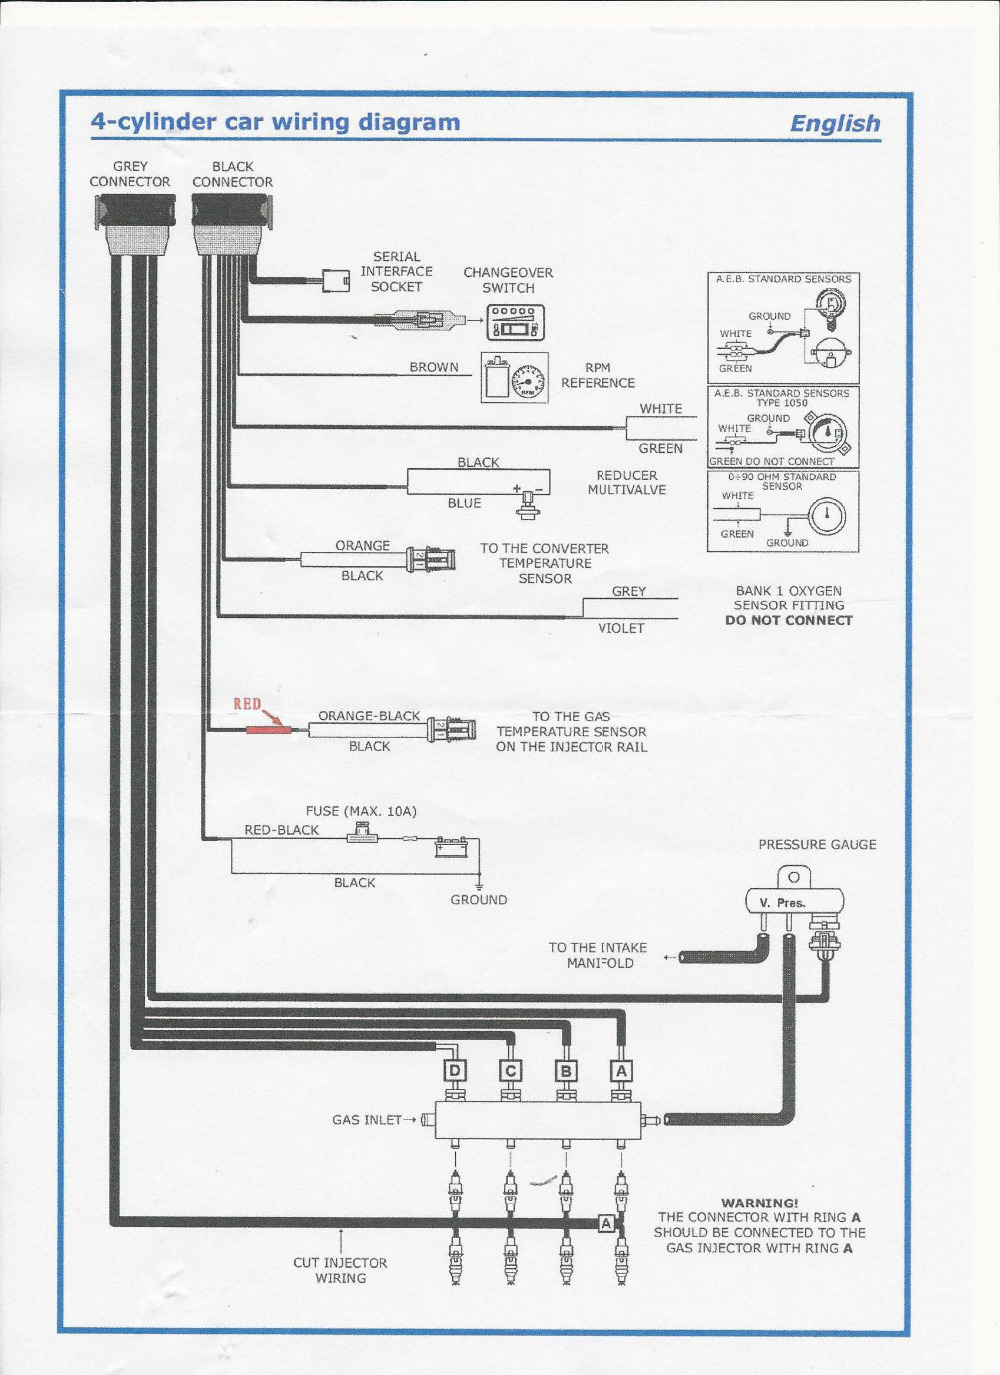 Outstanding lpg wiring diagram mold electrical system block automotive lpg wiring diagram automotive lpg wiring diagram valid swarovskicordoba Image collections